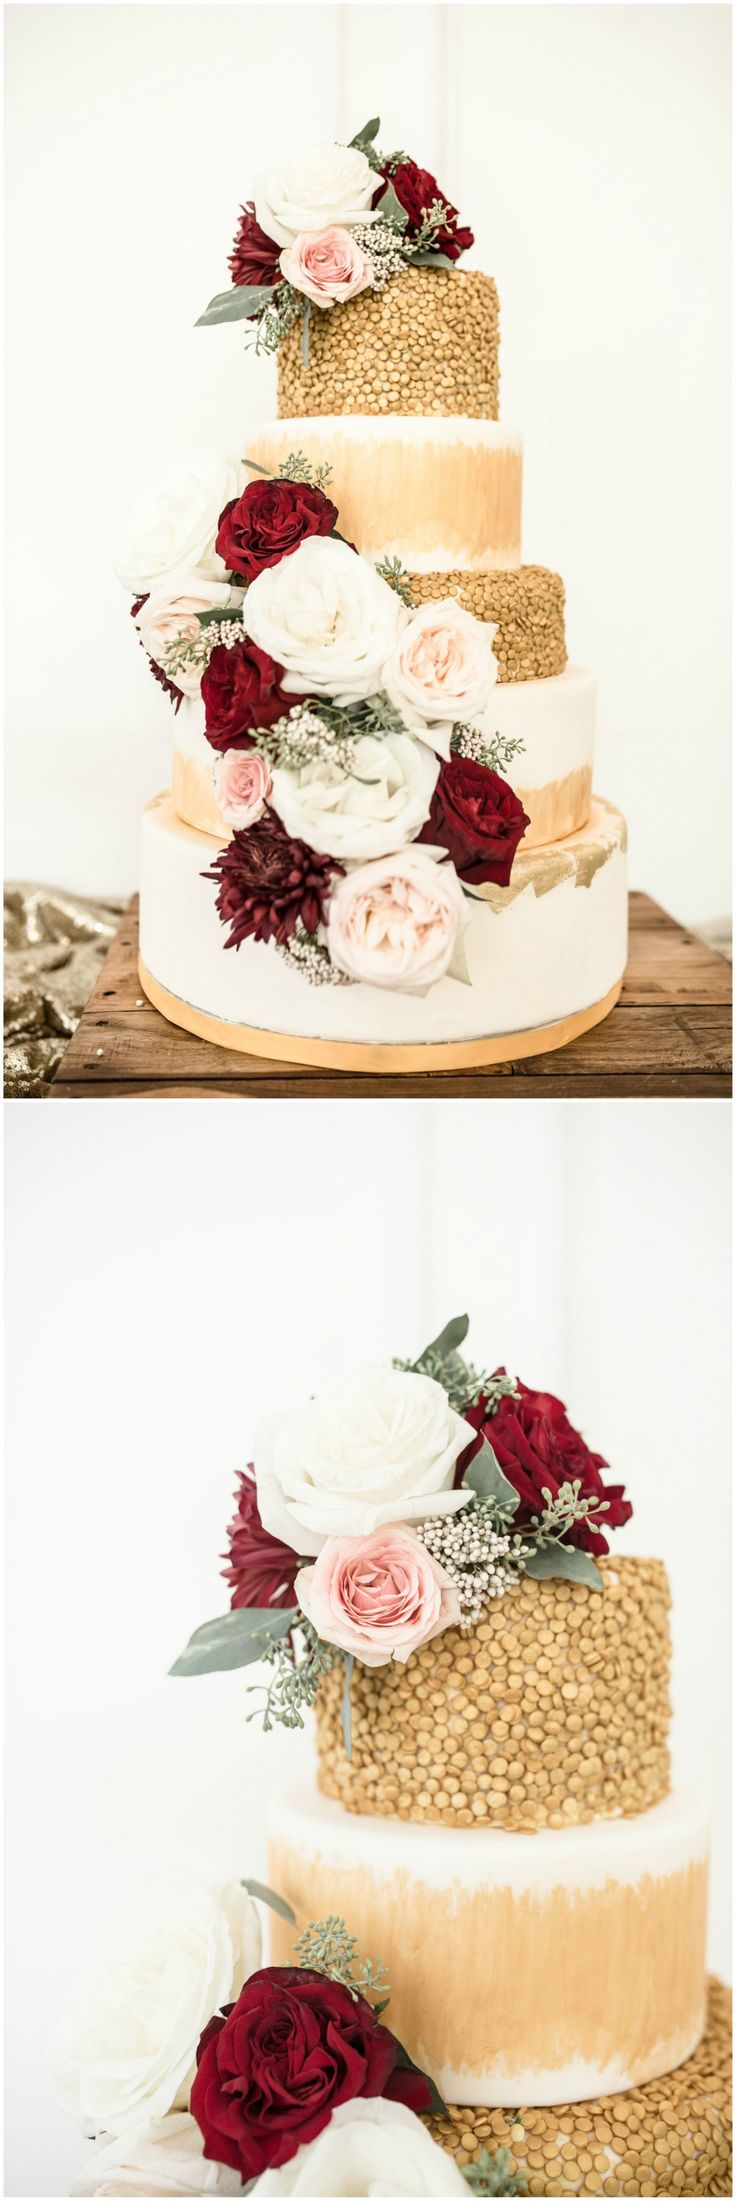 how to decorate wedding cake best 25 seeded eucalyptus ideas on flower 4918